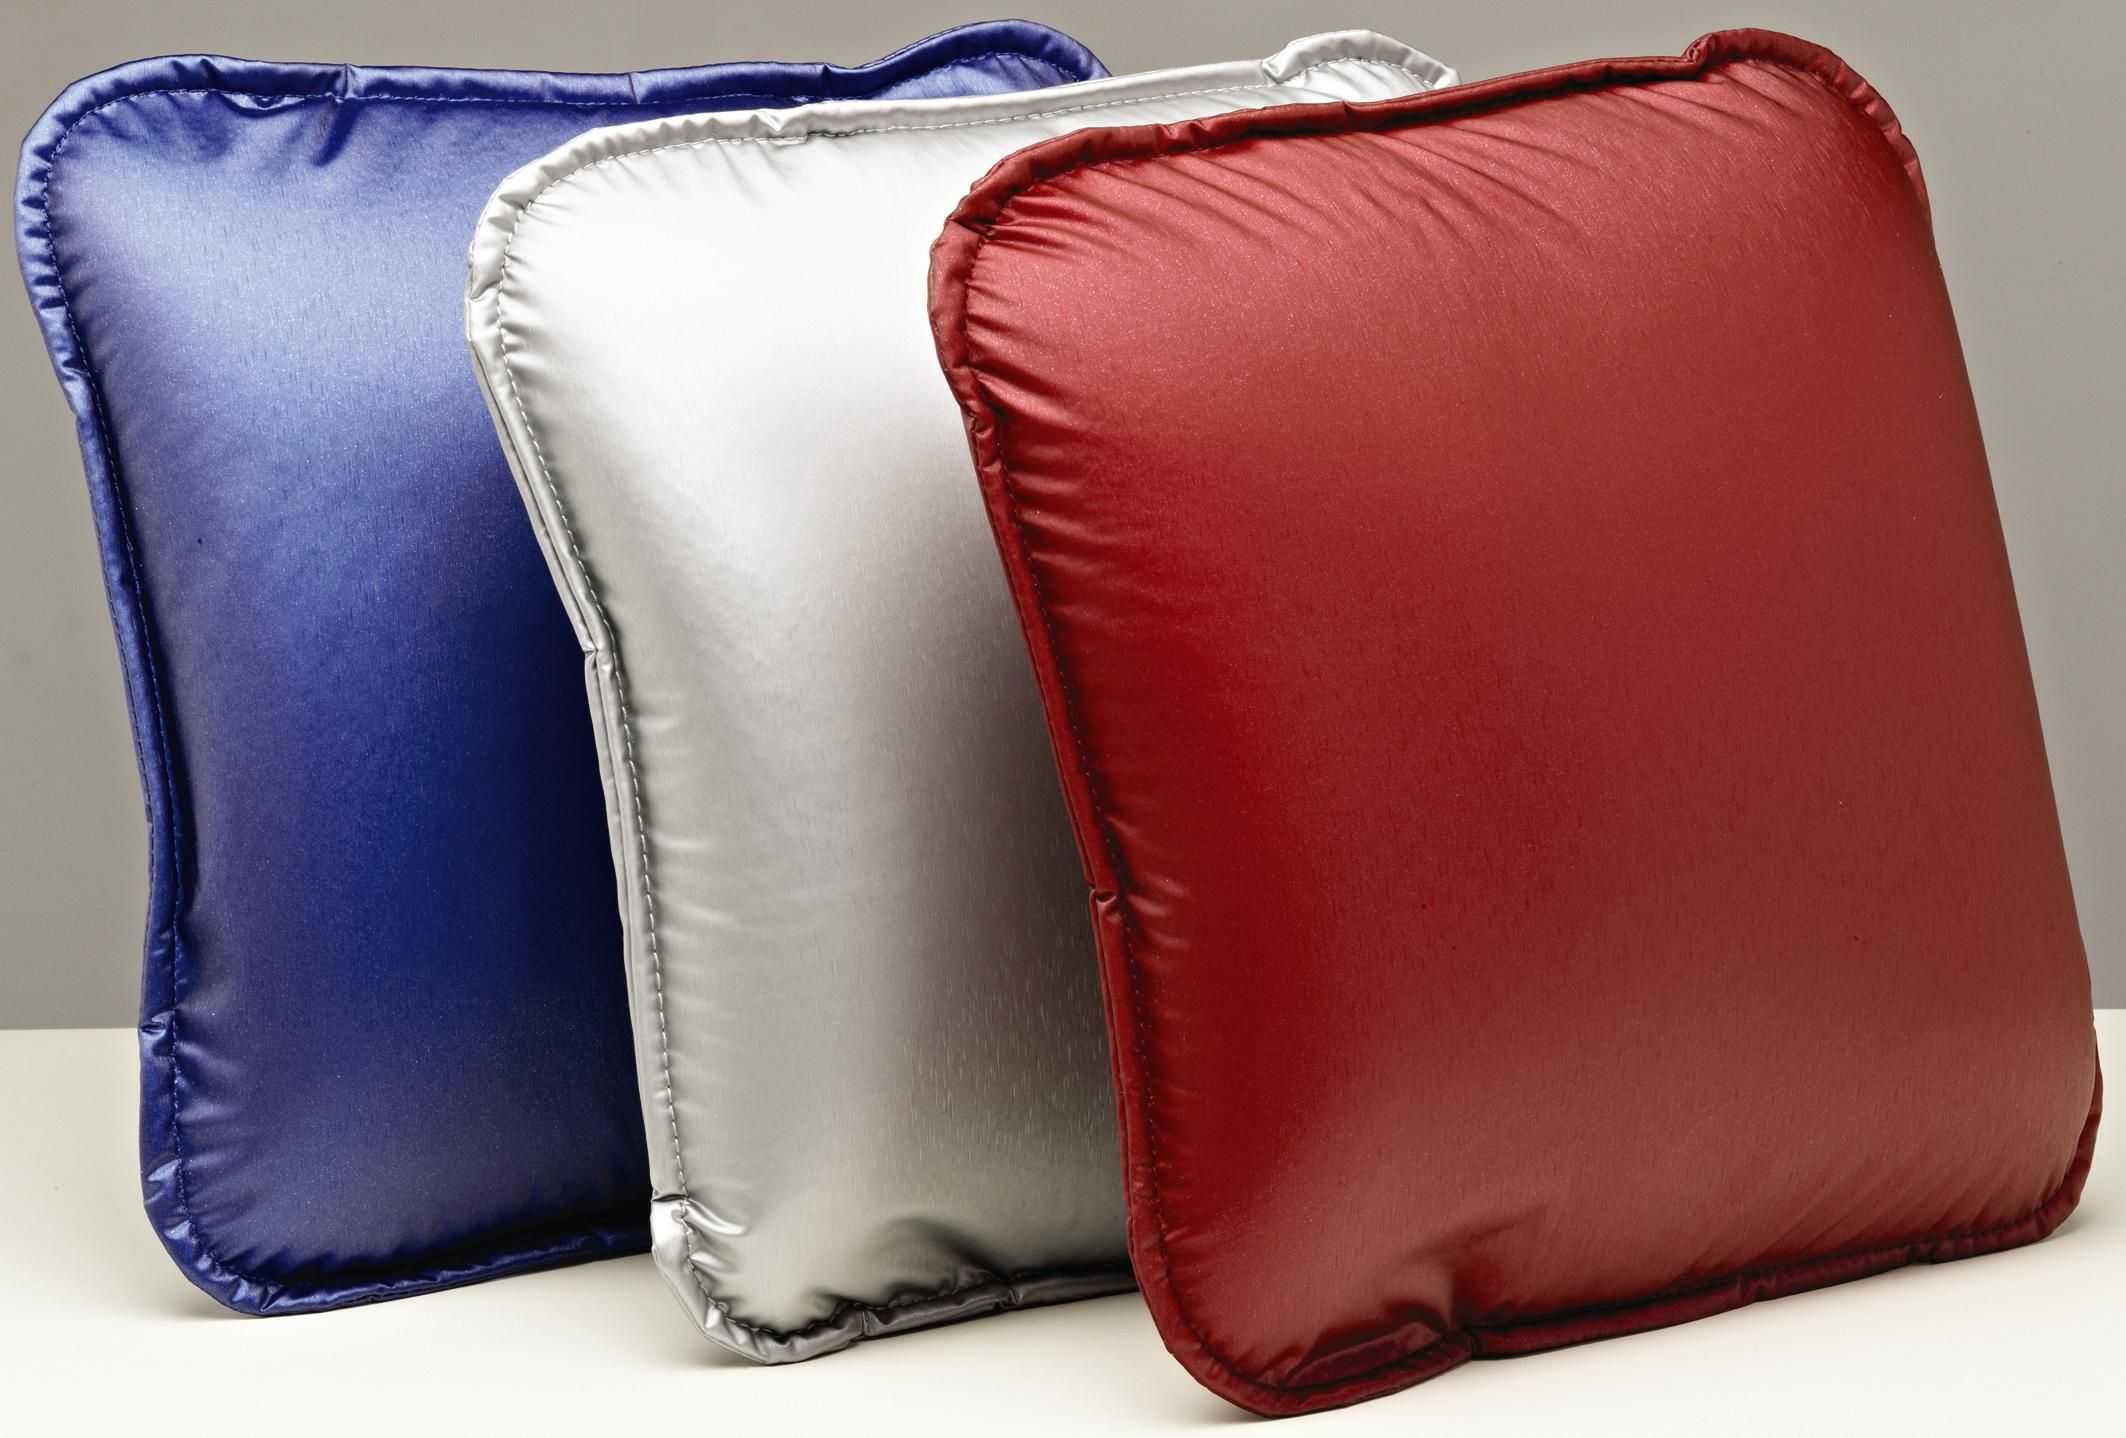 Vibrating Pillow - Switch Adapted